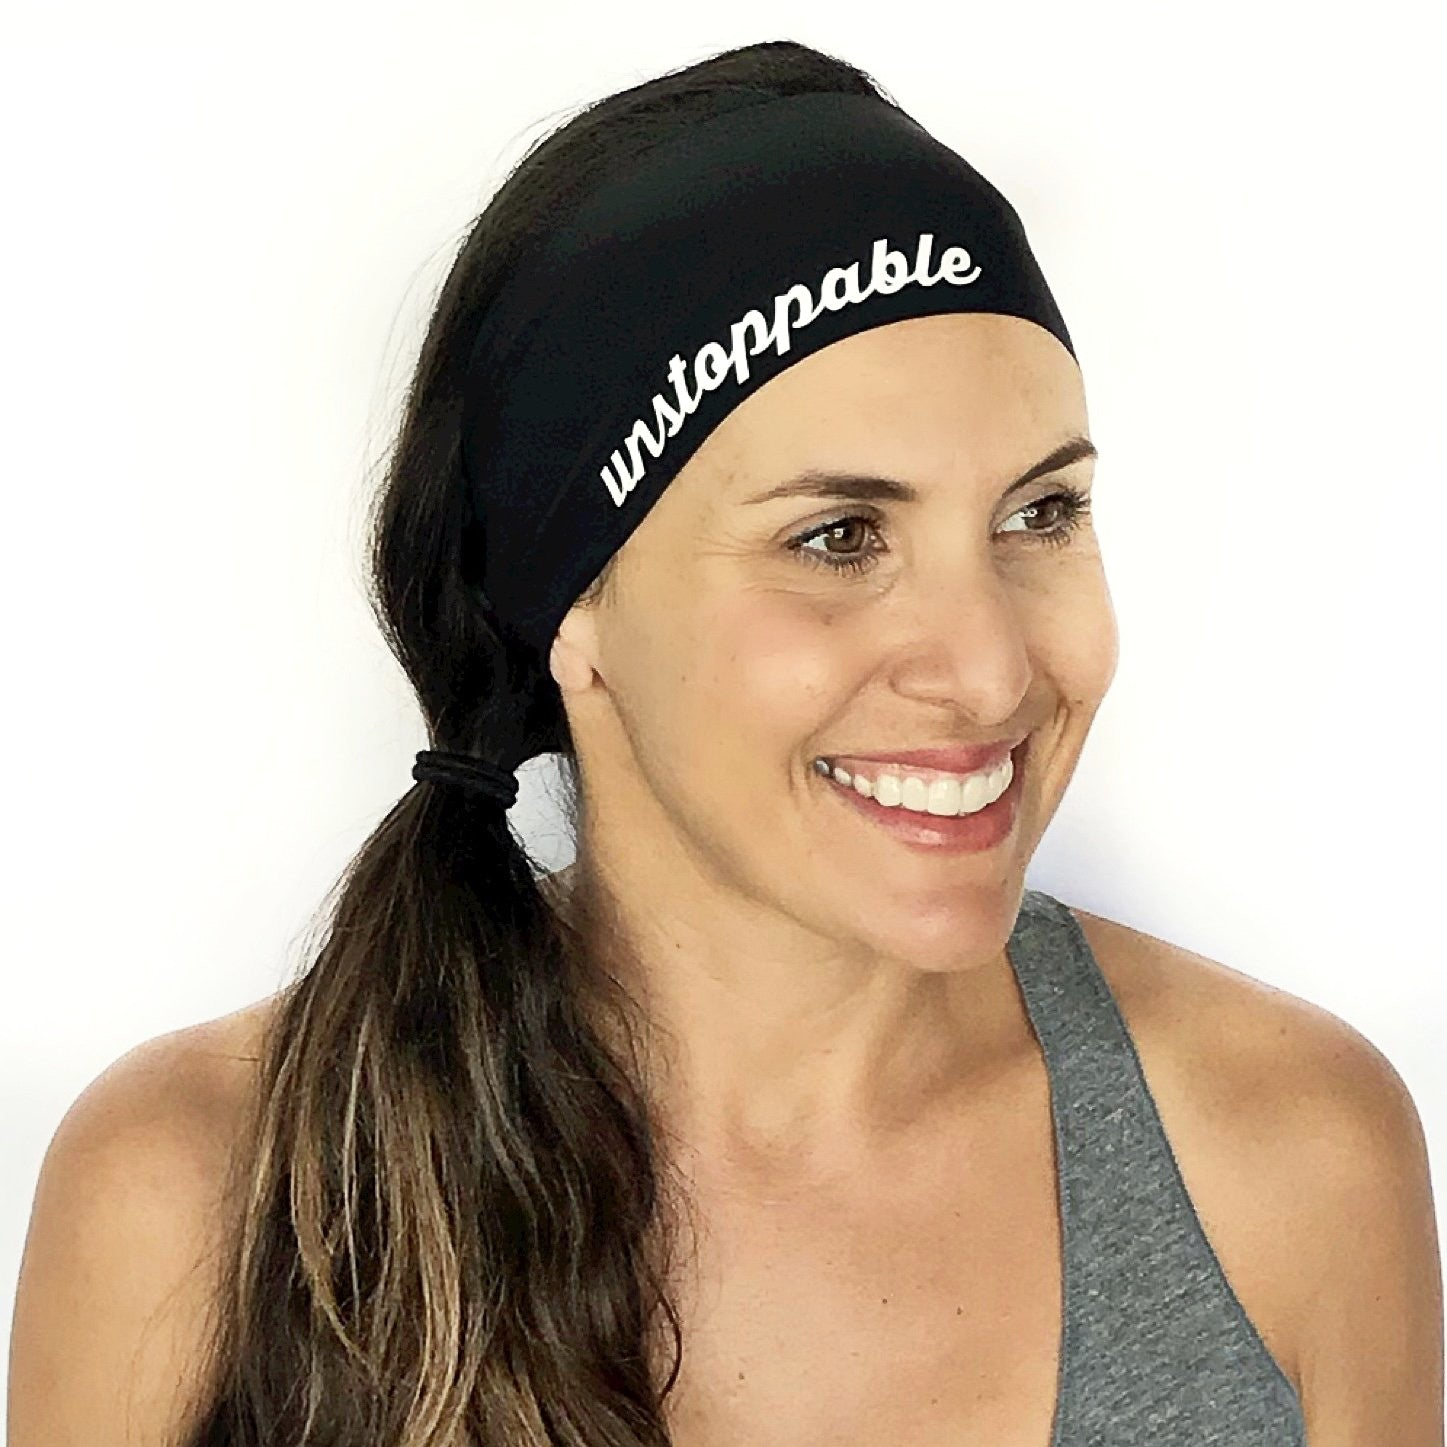 Unstopabble Headband